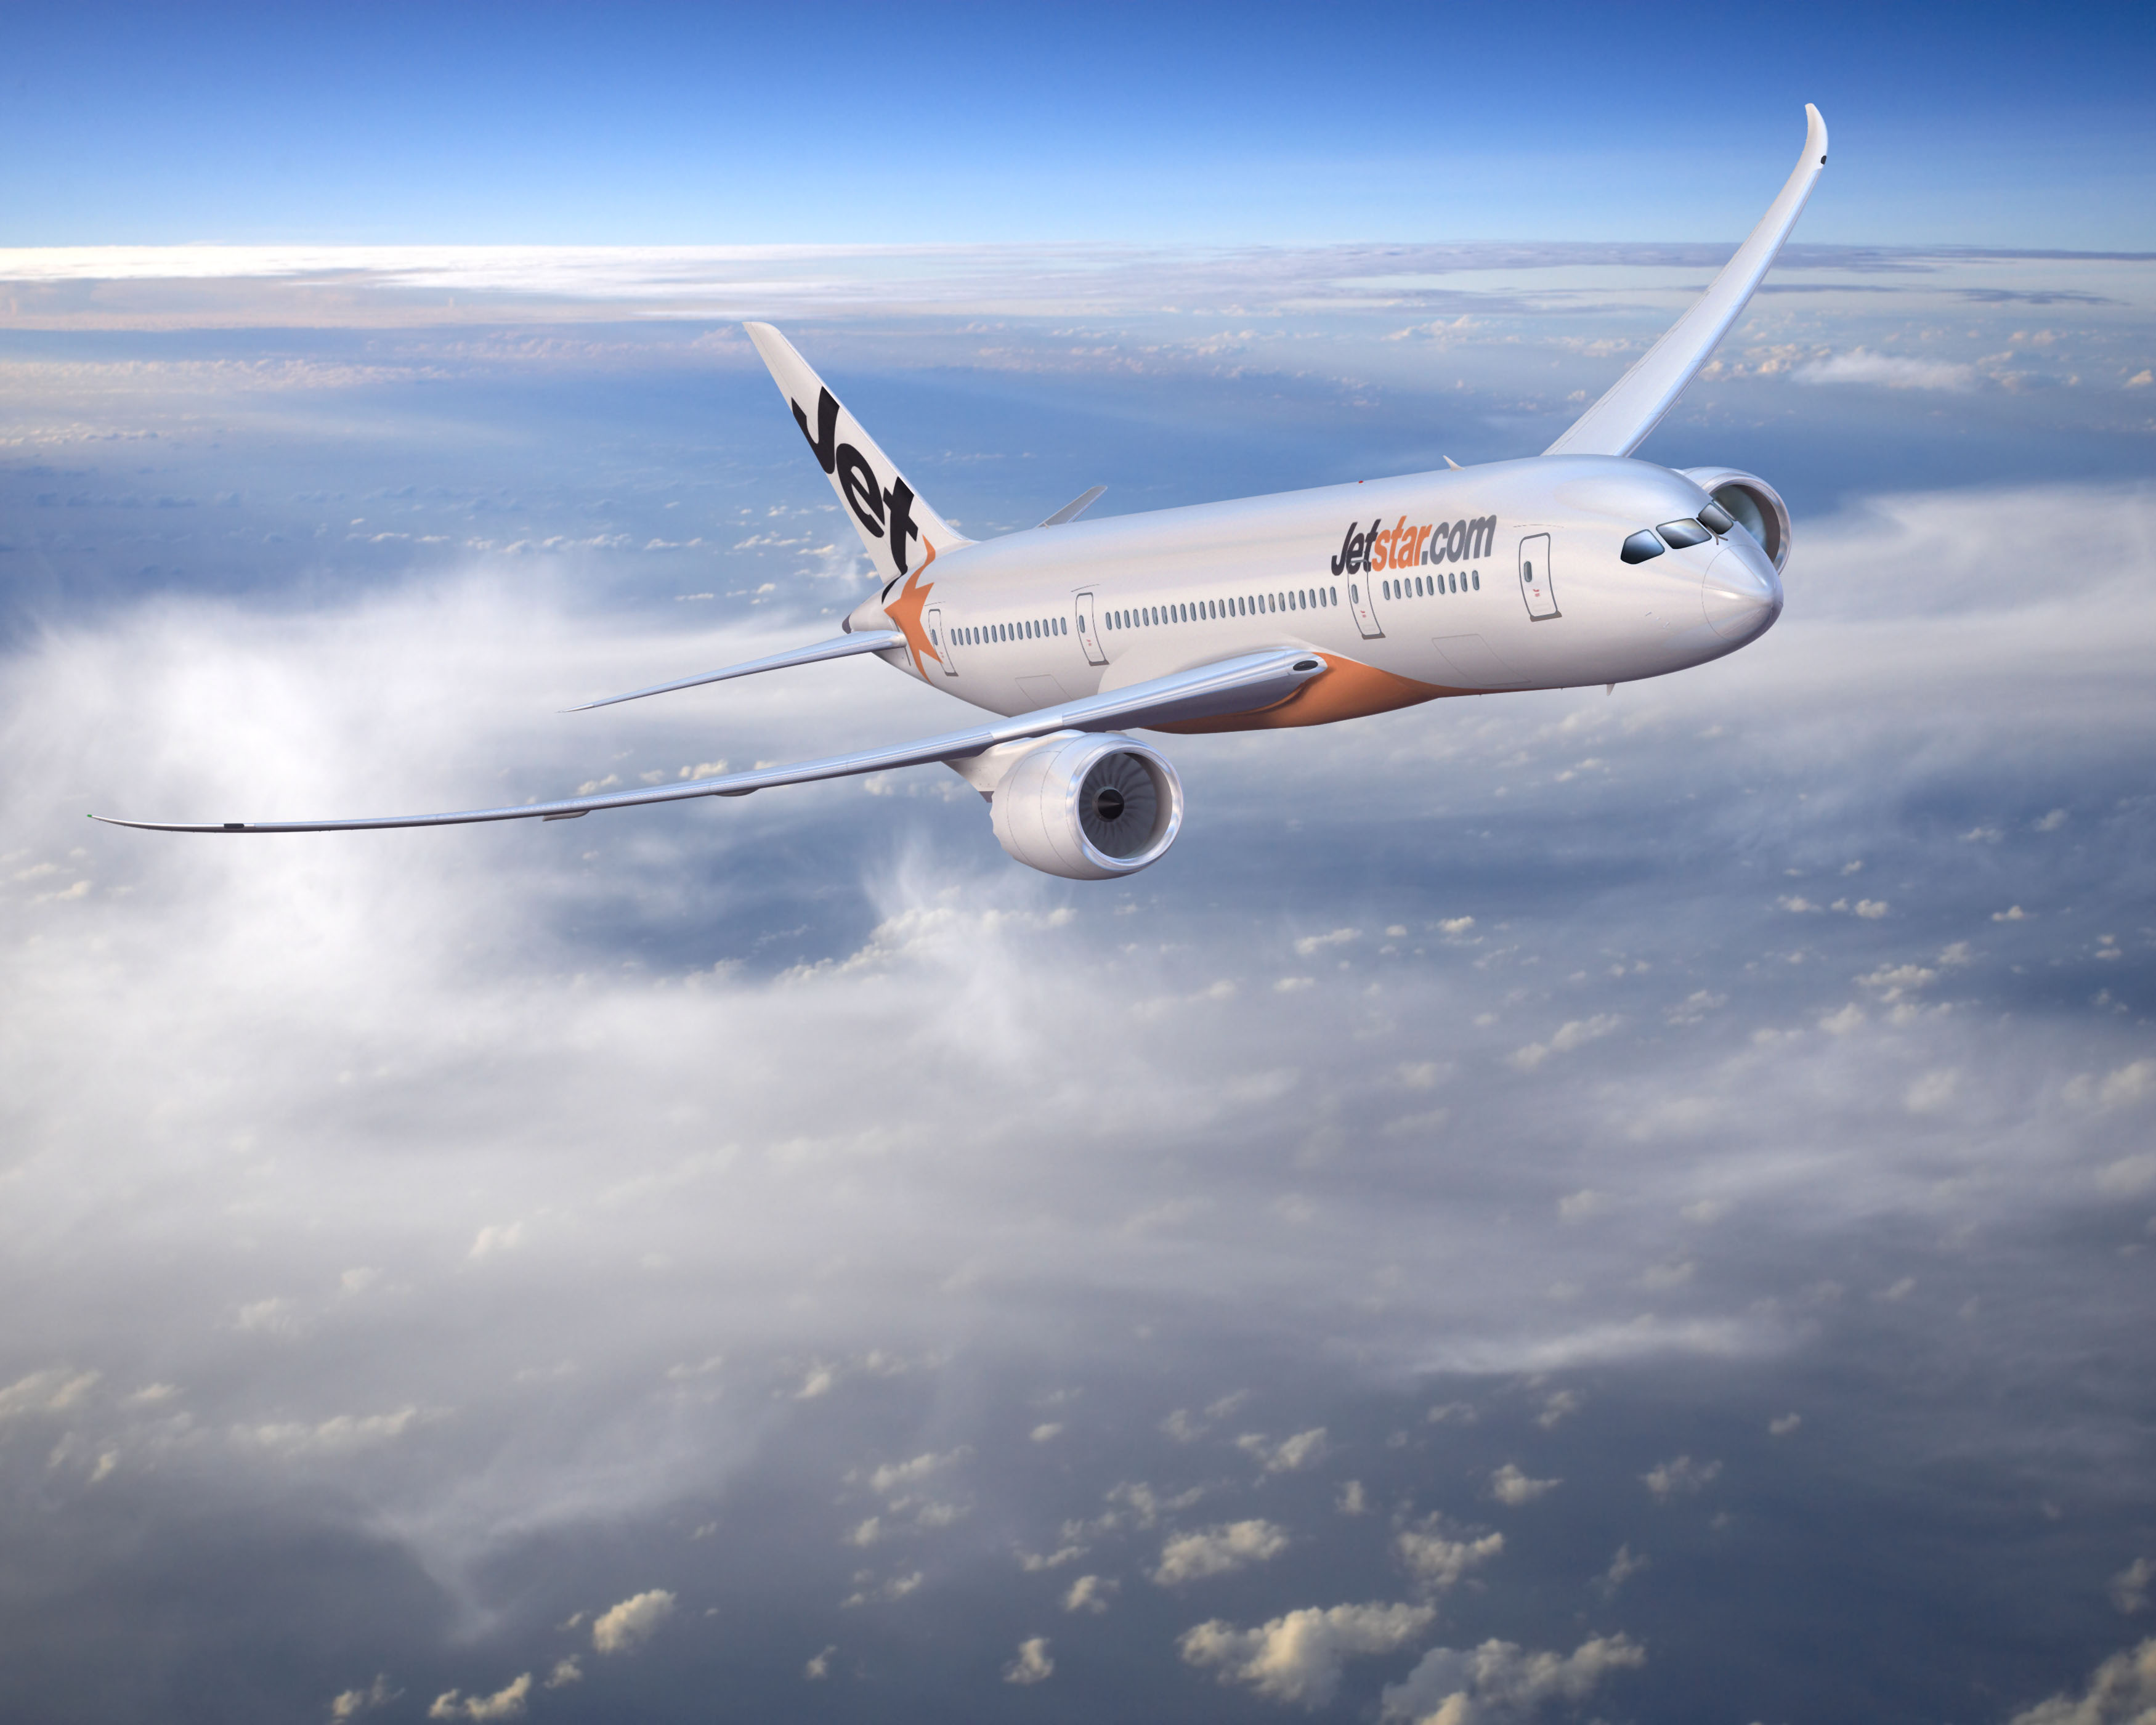 Jetstar's first Dreamliner brings jobs and investments to the Victorian economy